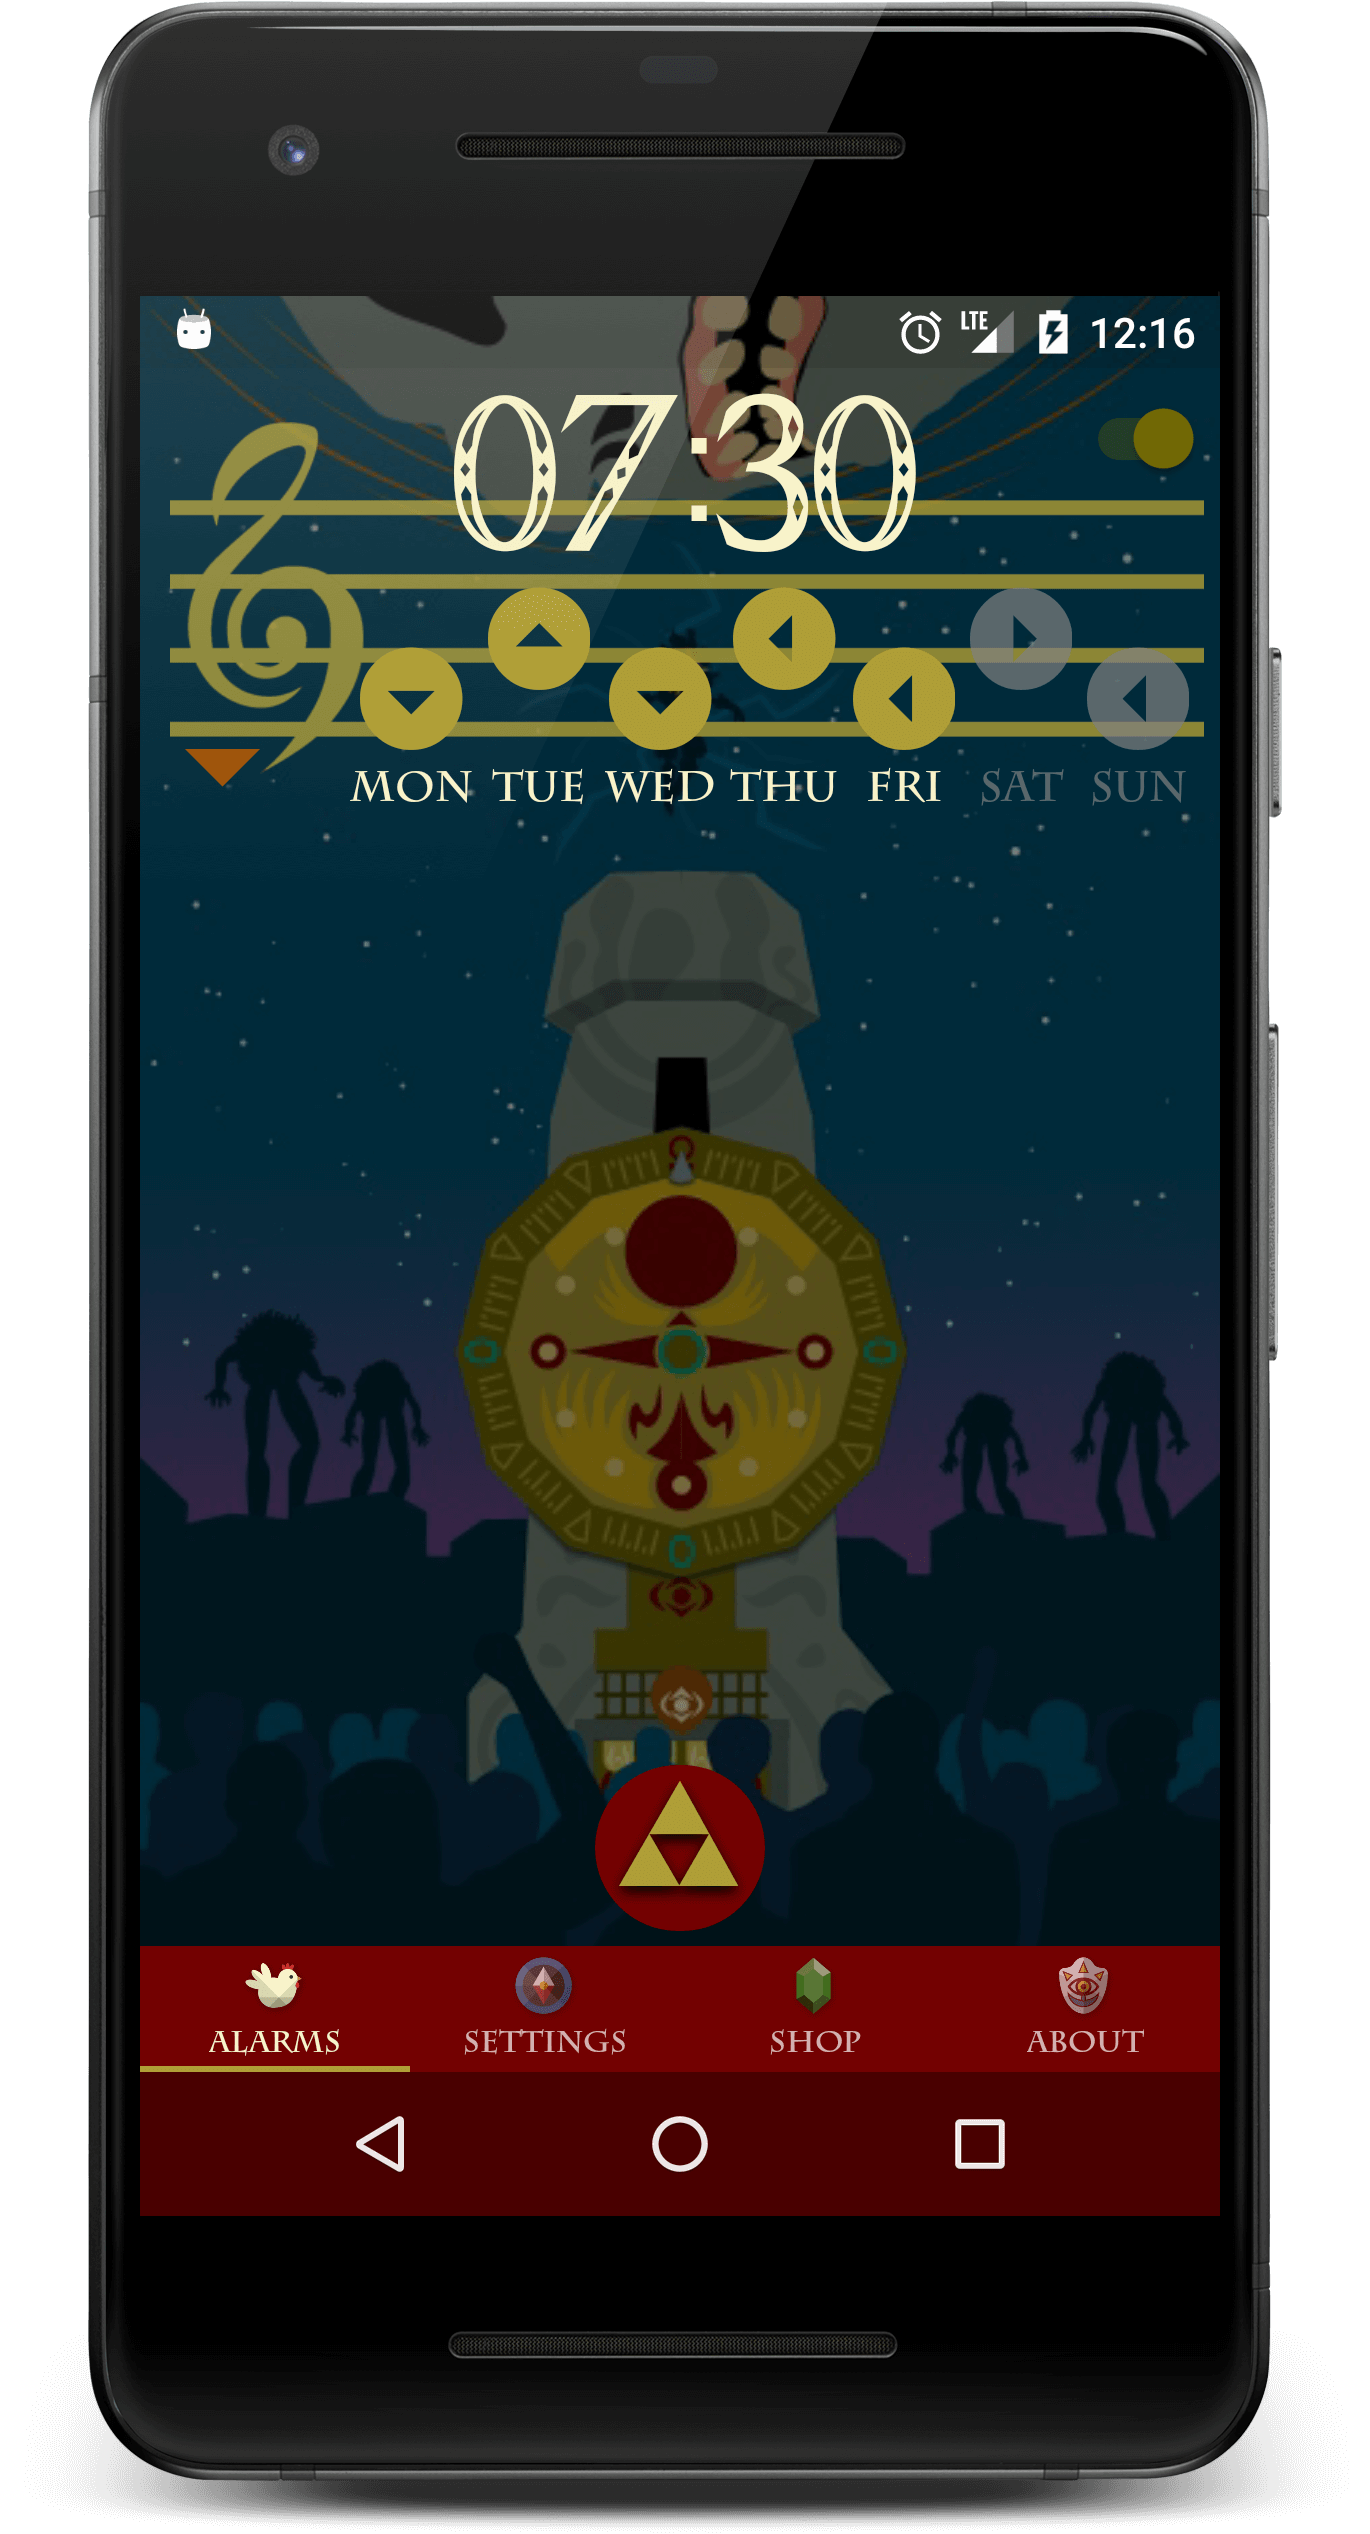 Zelda alarm clock on pixel 2 phone